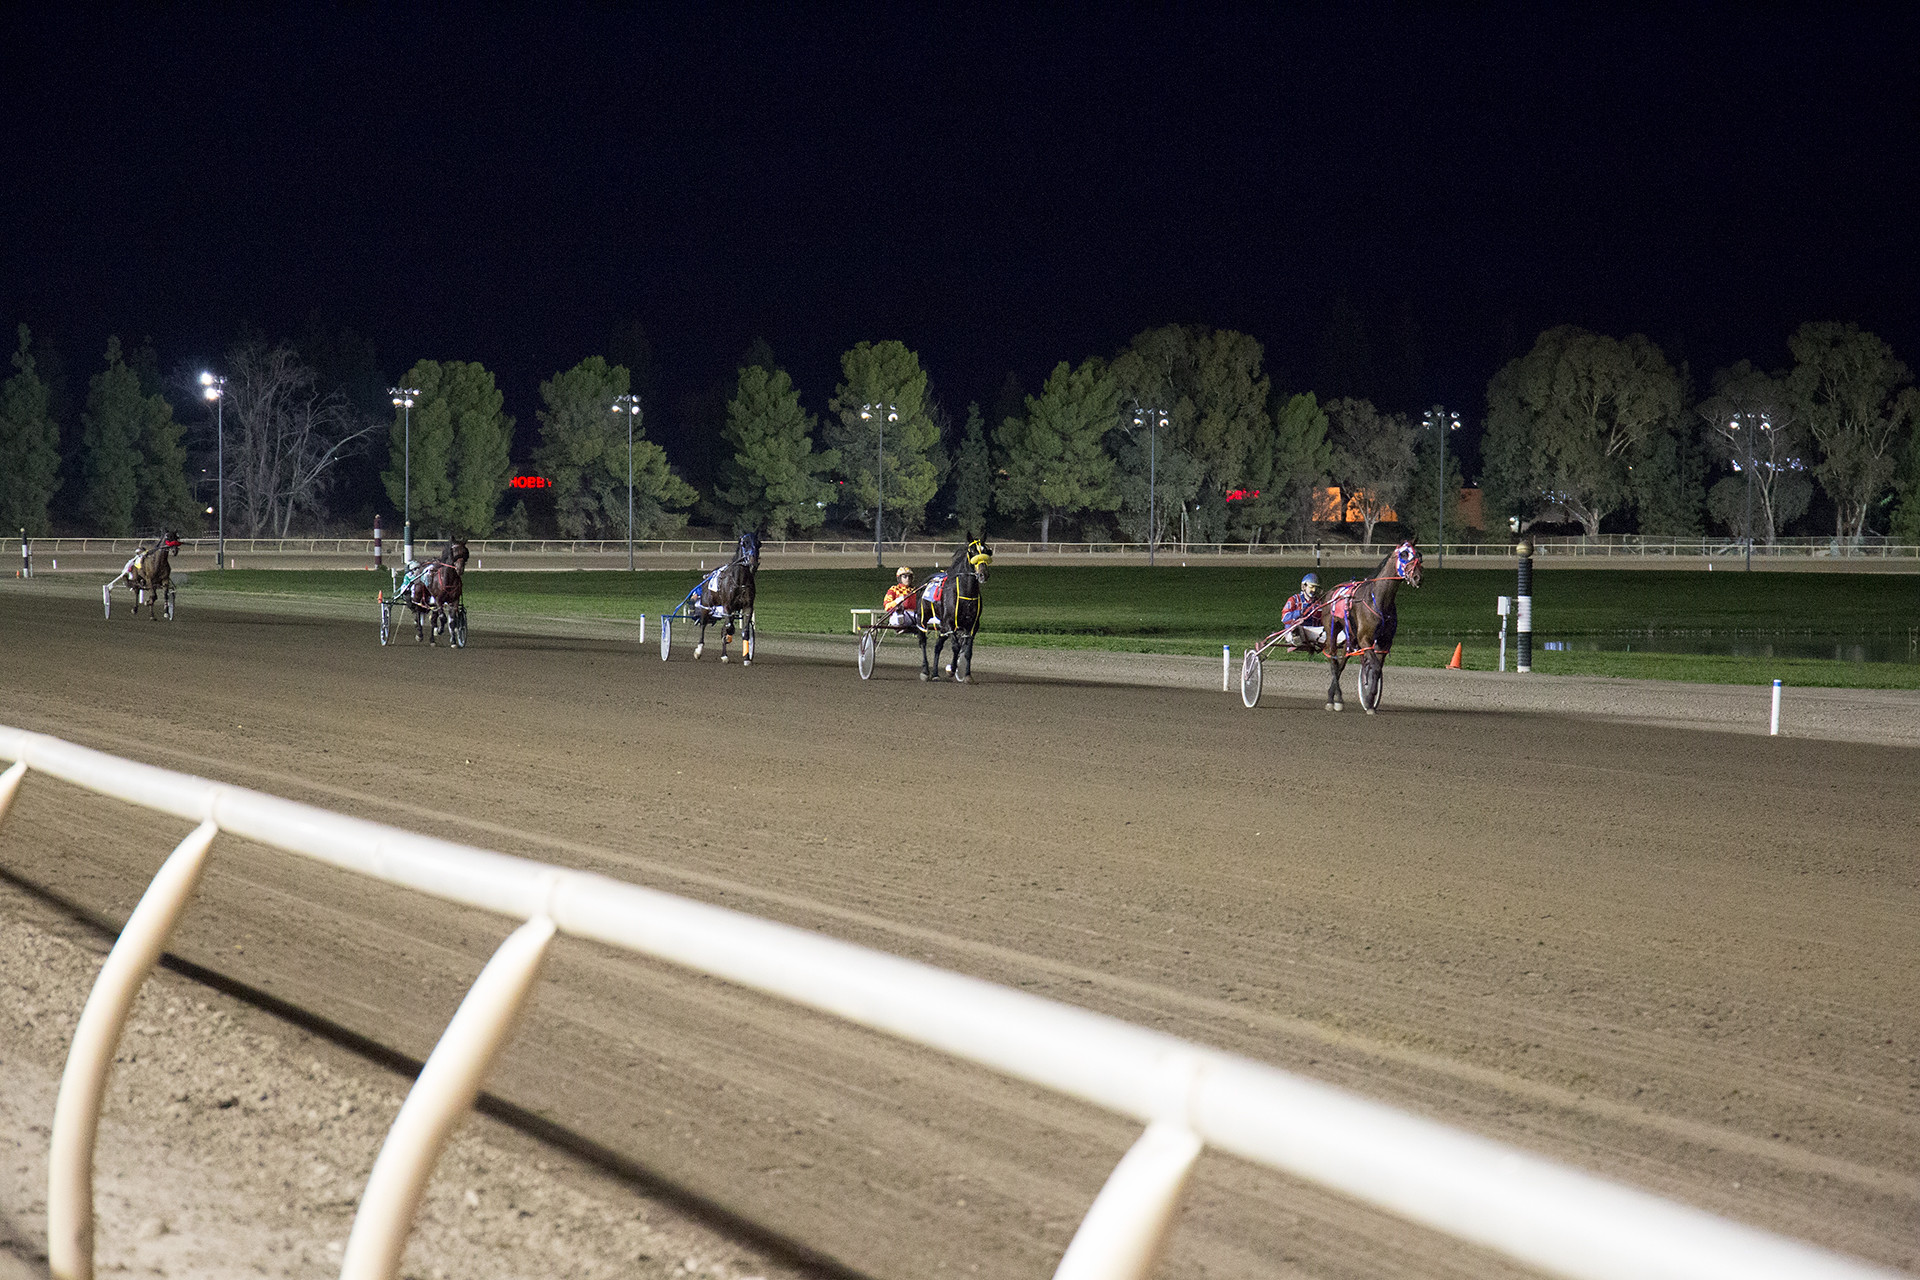 Night time harness racing. A line of racers.